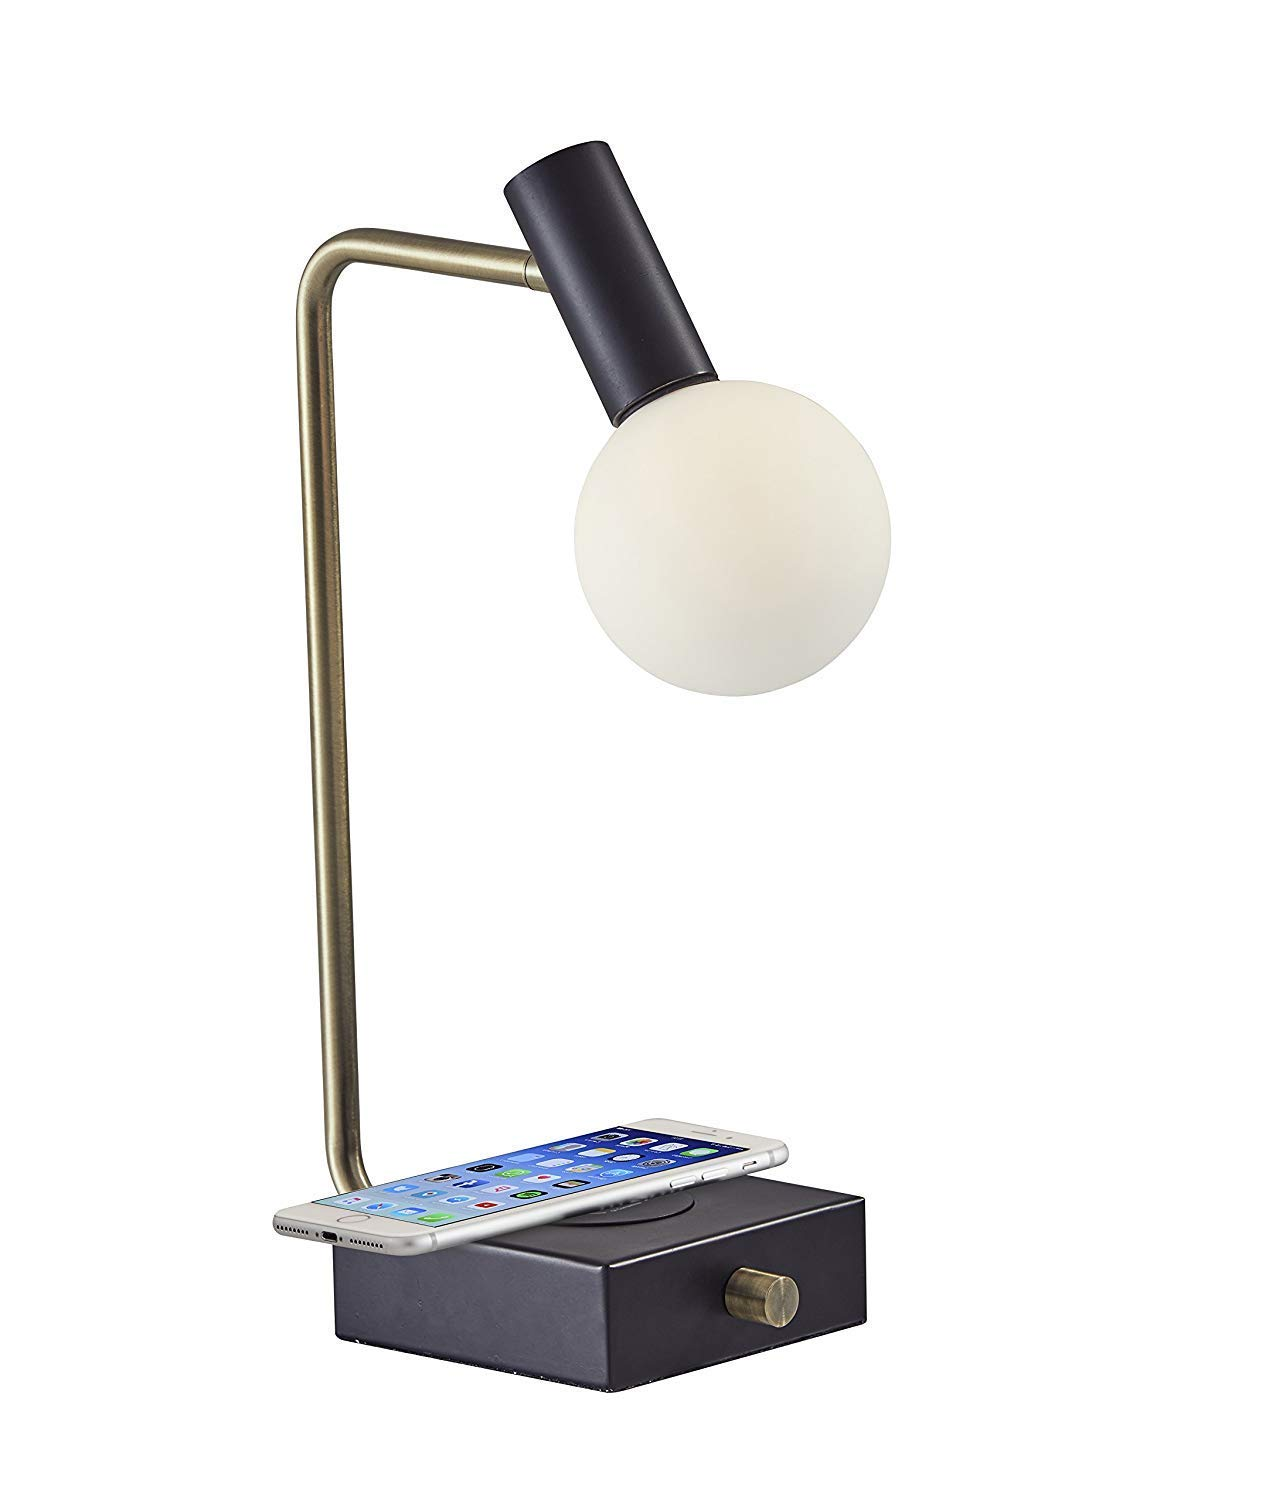 LED Desk Lamp with Bluetooth Speaker Study Lamp for Kids with Memory Function Touch Control Wireless Table Lamp Bedside Lamp Office Lamp with Phone Holder//USB Charging Port